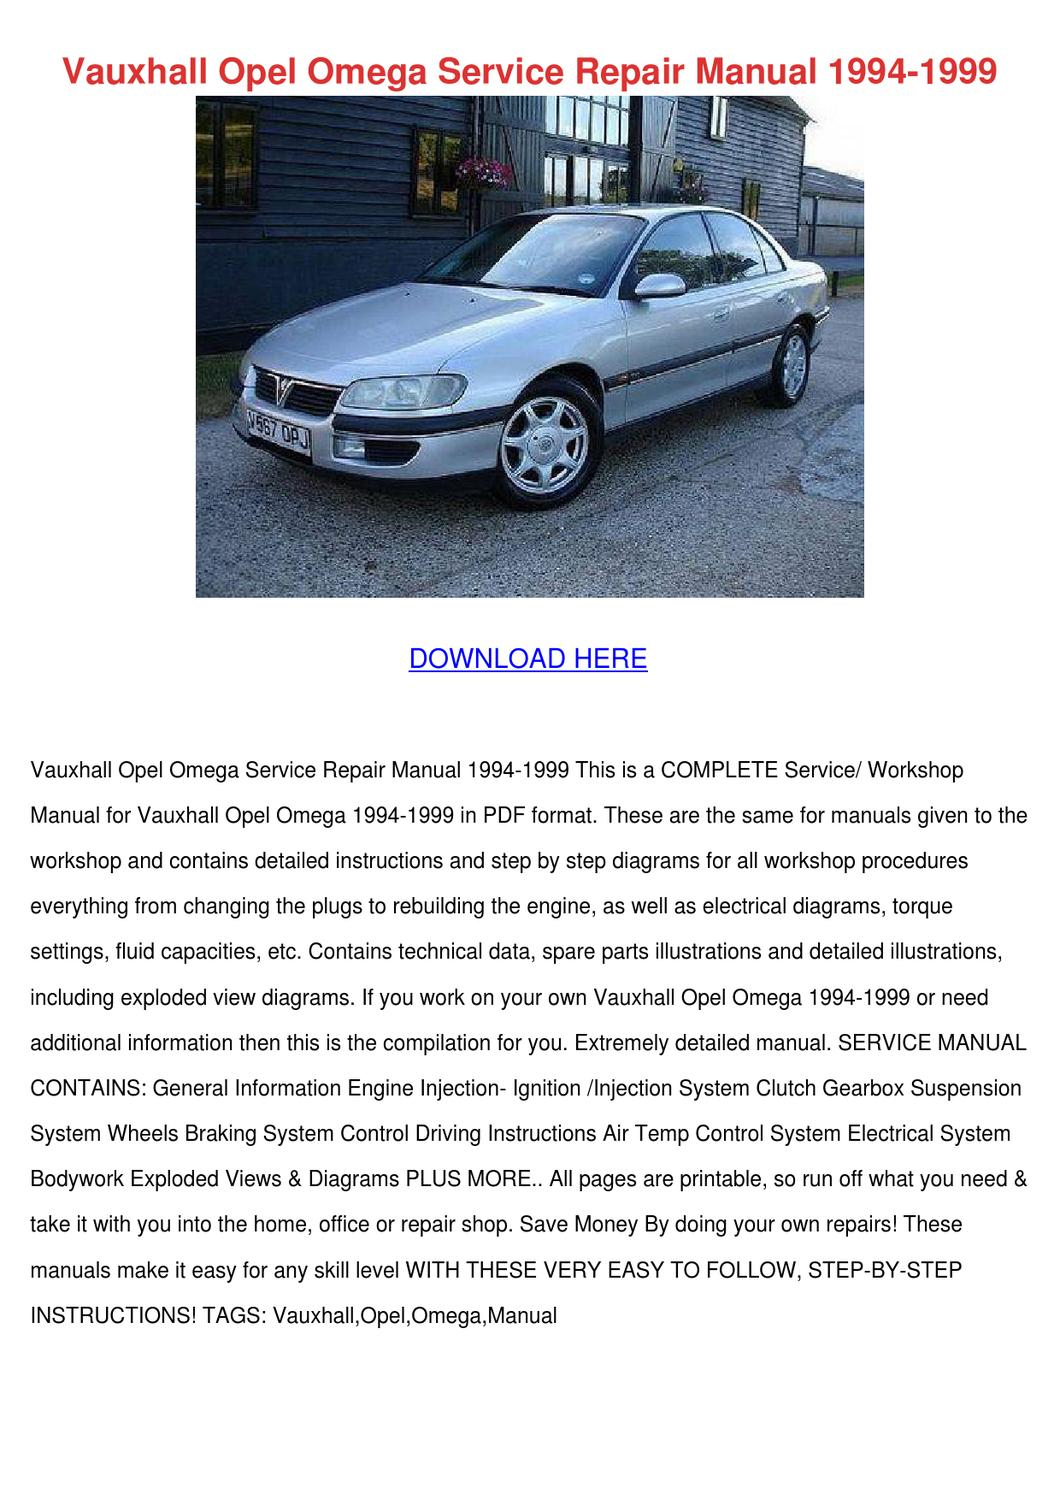 Vauxhall Opel Omega Service Repair Manual 199 By Simonesheridan Issuu Renault Workshop Wiring Diagram 2012 Pack